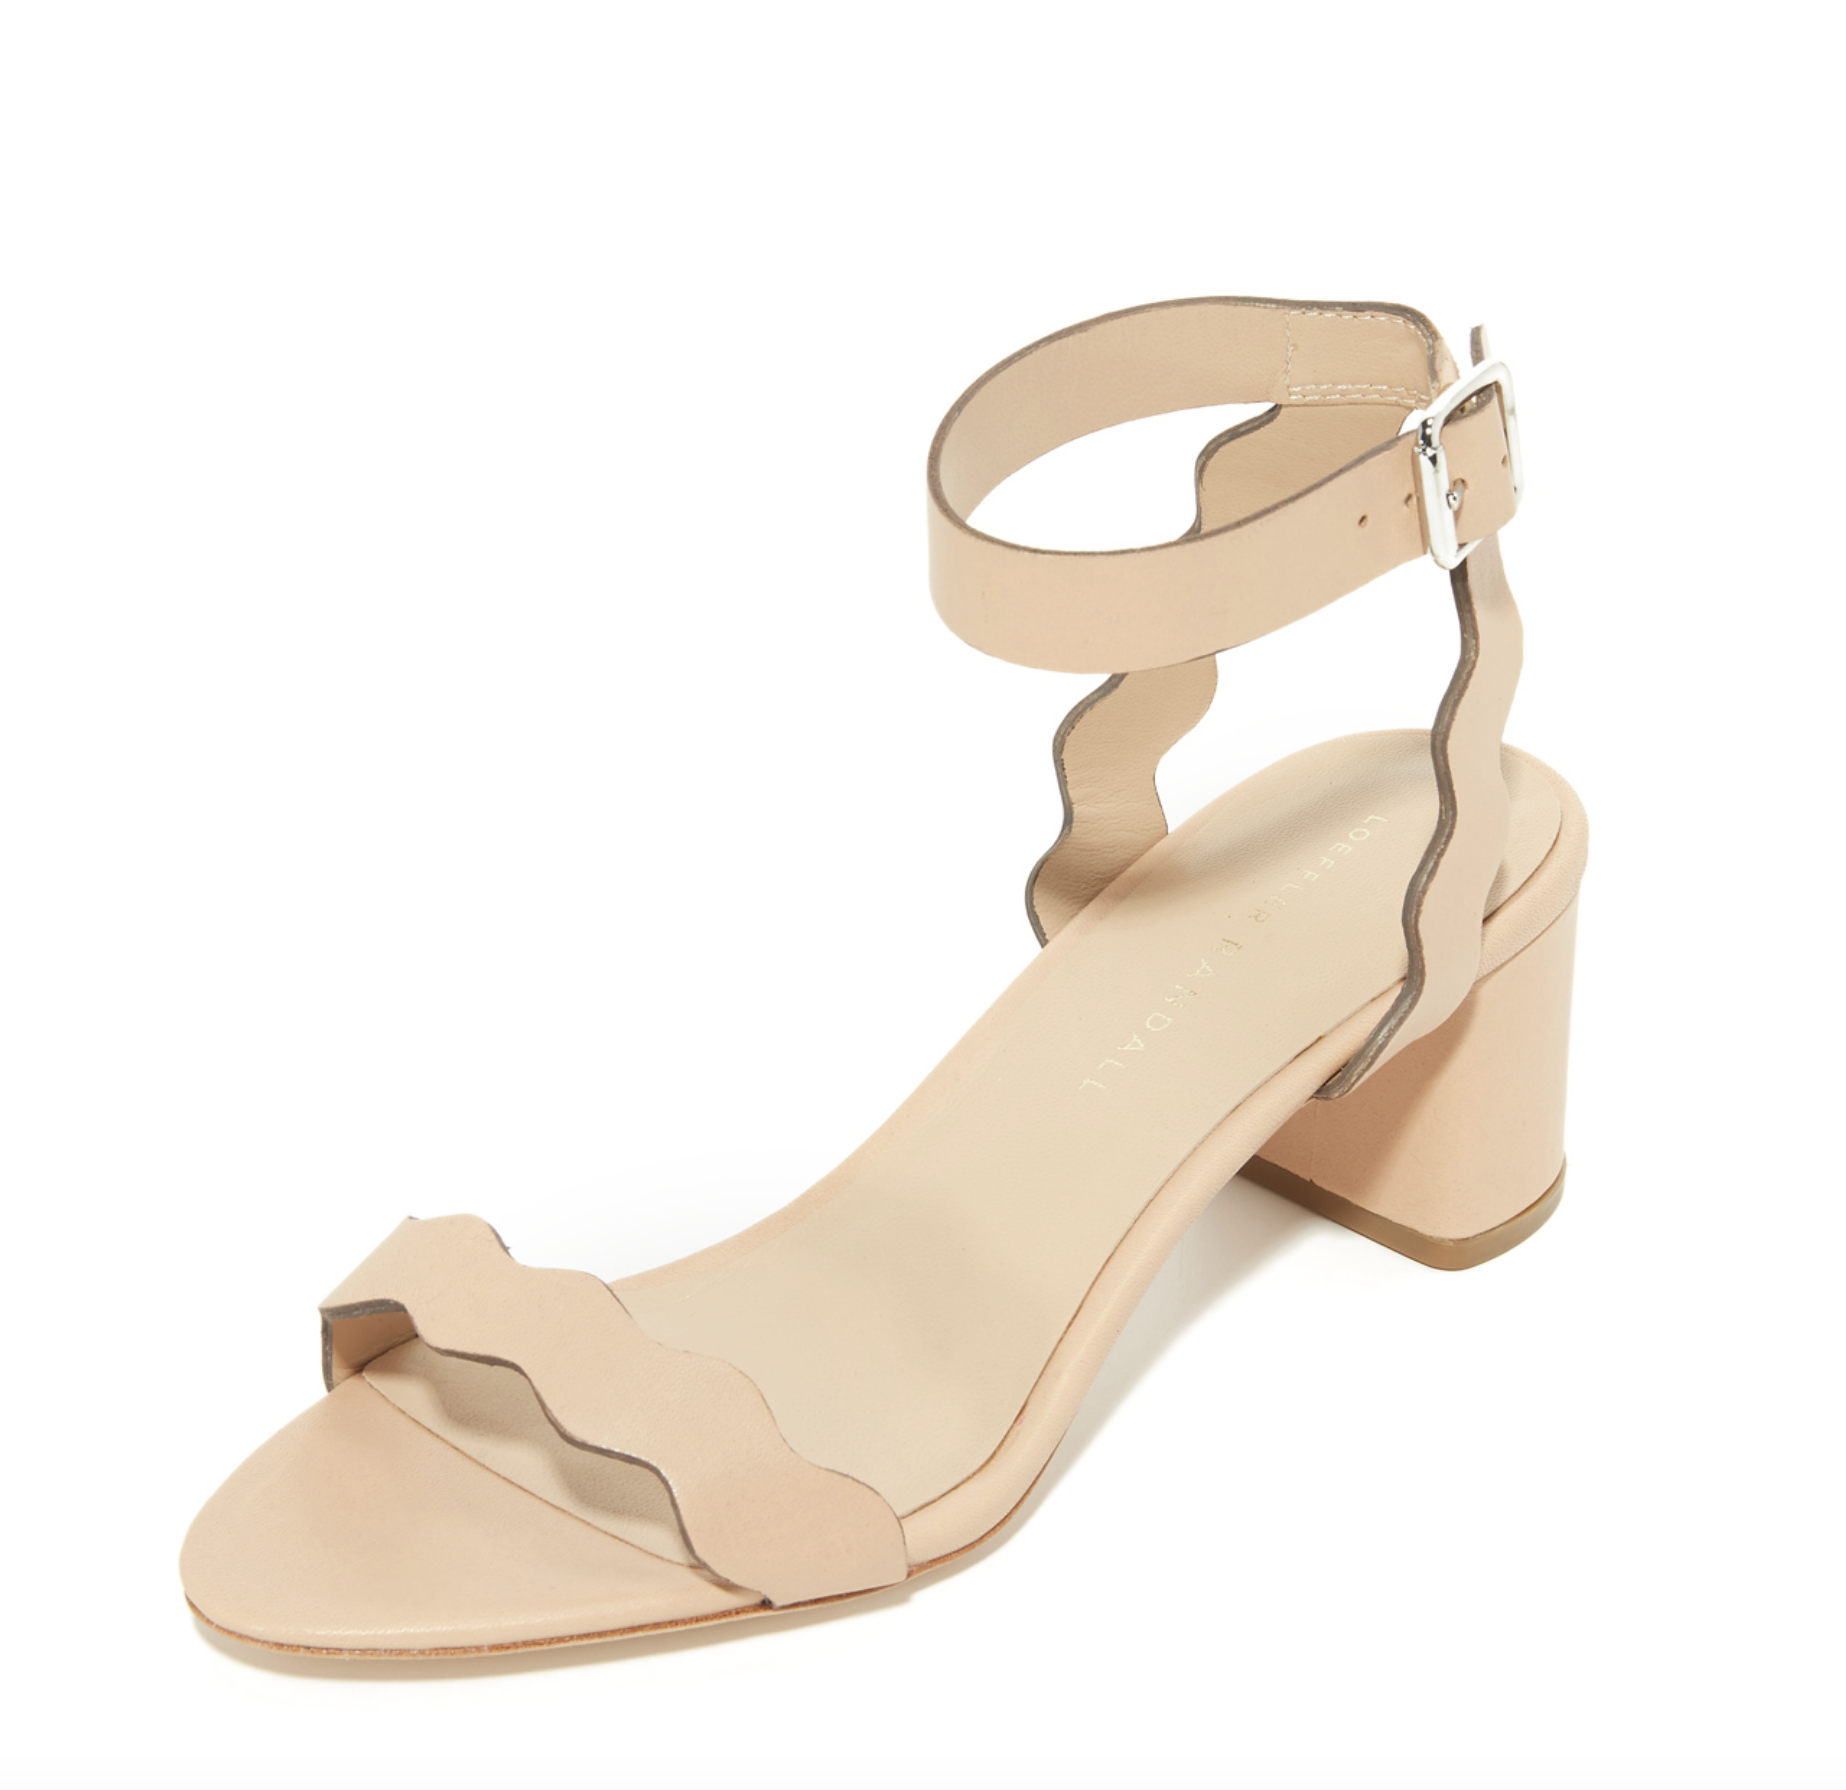 Loeffler Randall - Emi - These are so close! But the wavy straps are throwing me off. Are the good? Or bad? I honestly can't tell.